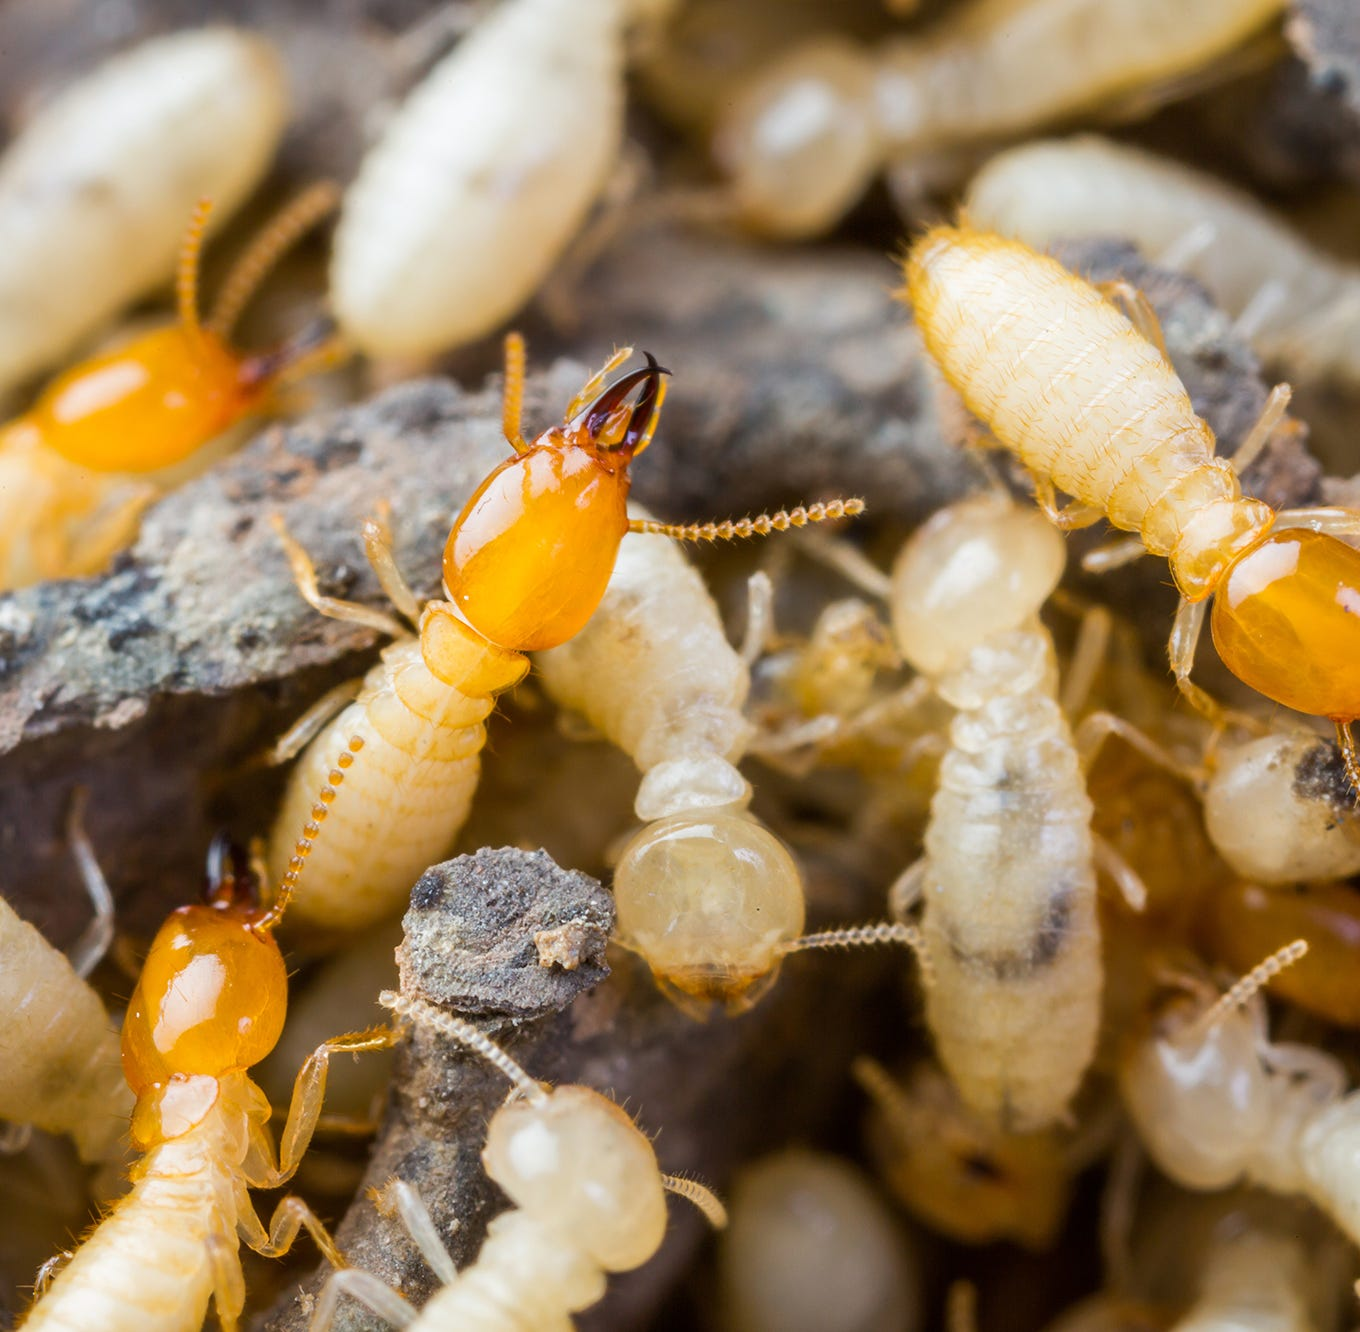 How to Prevent Termites From Damaging Your Home